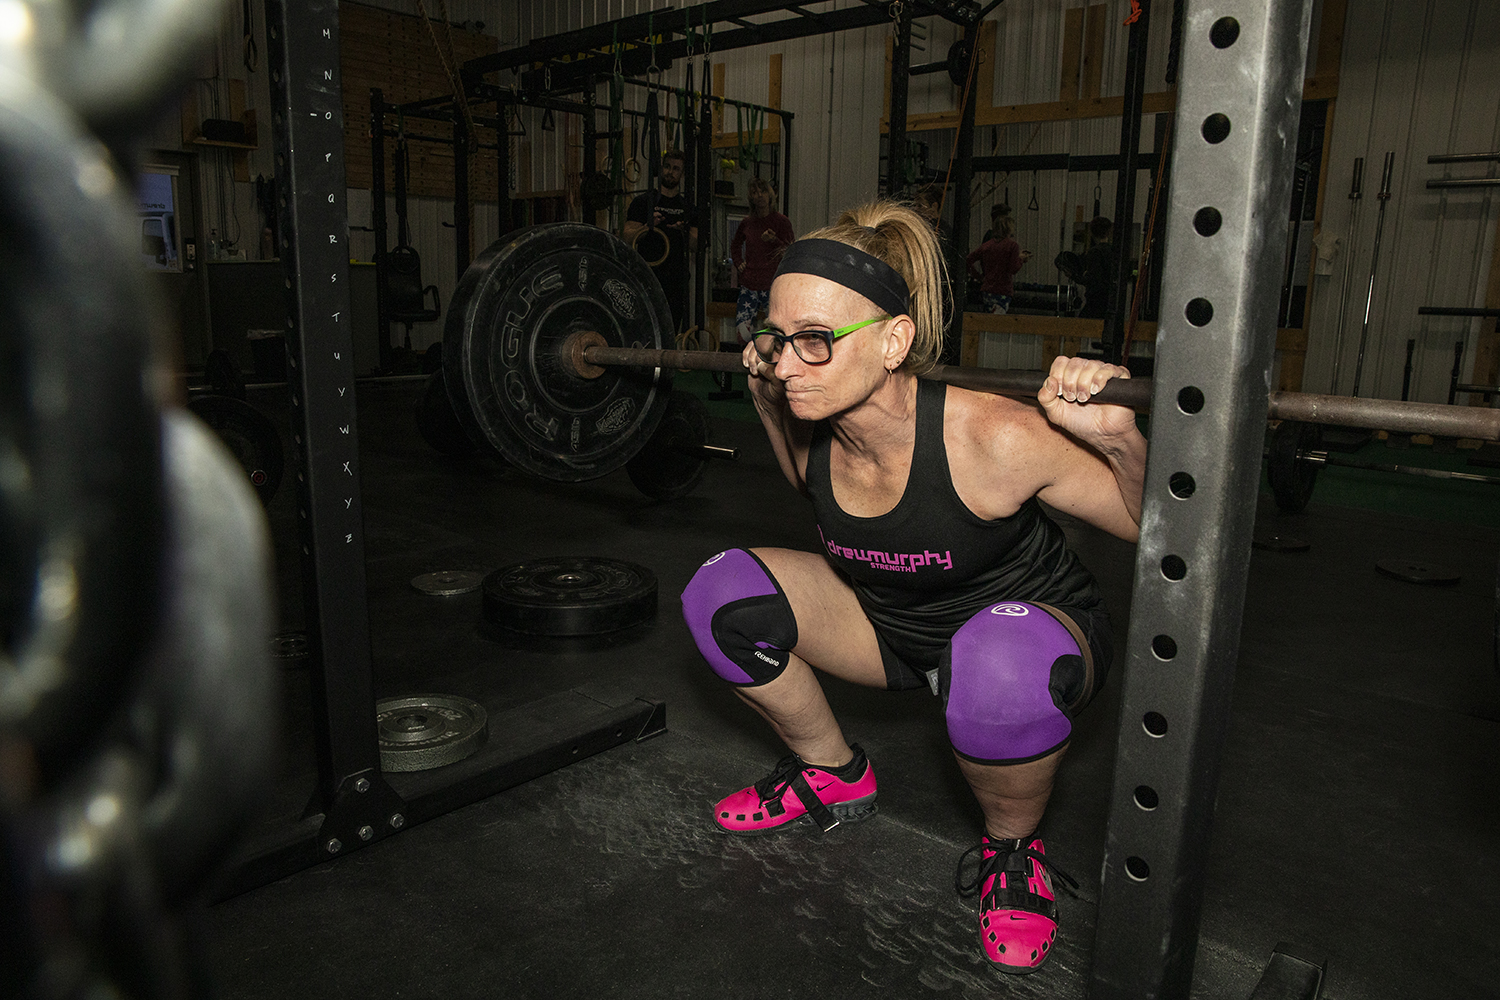 Powerlifting competitor Linda Smith performs a squat at Drew Murphy Strength in Tiffin, Iowa on Thursday Feb. 13, 2019. Smith recently set four deadlifting records in an Iowa competition through USA Powerlifting.